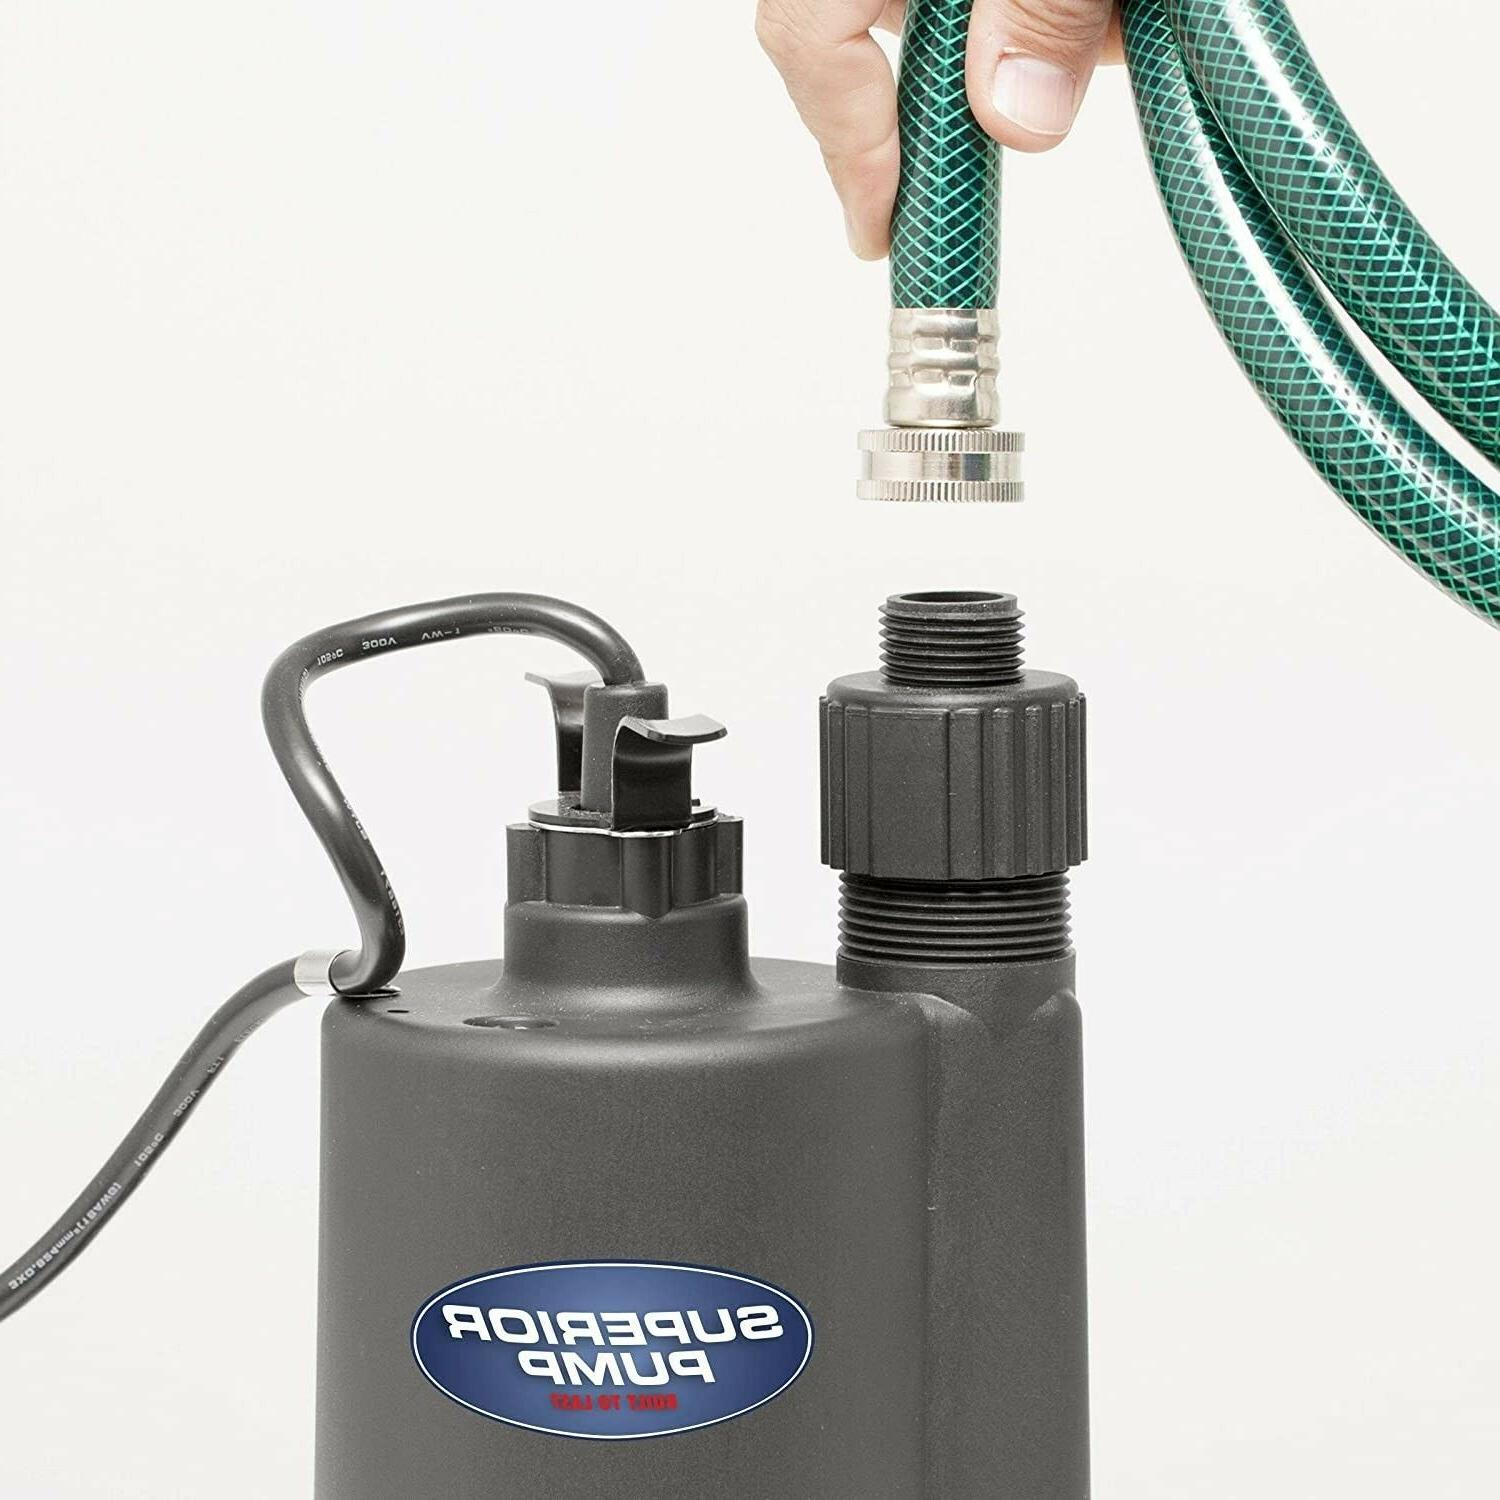 Superior HP Thermoplastic Pump with 10-Foot